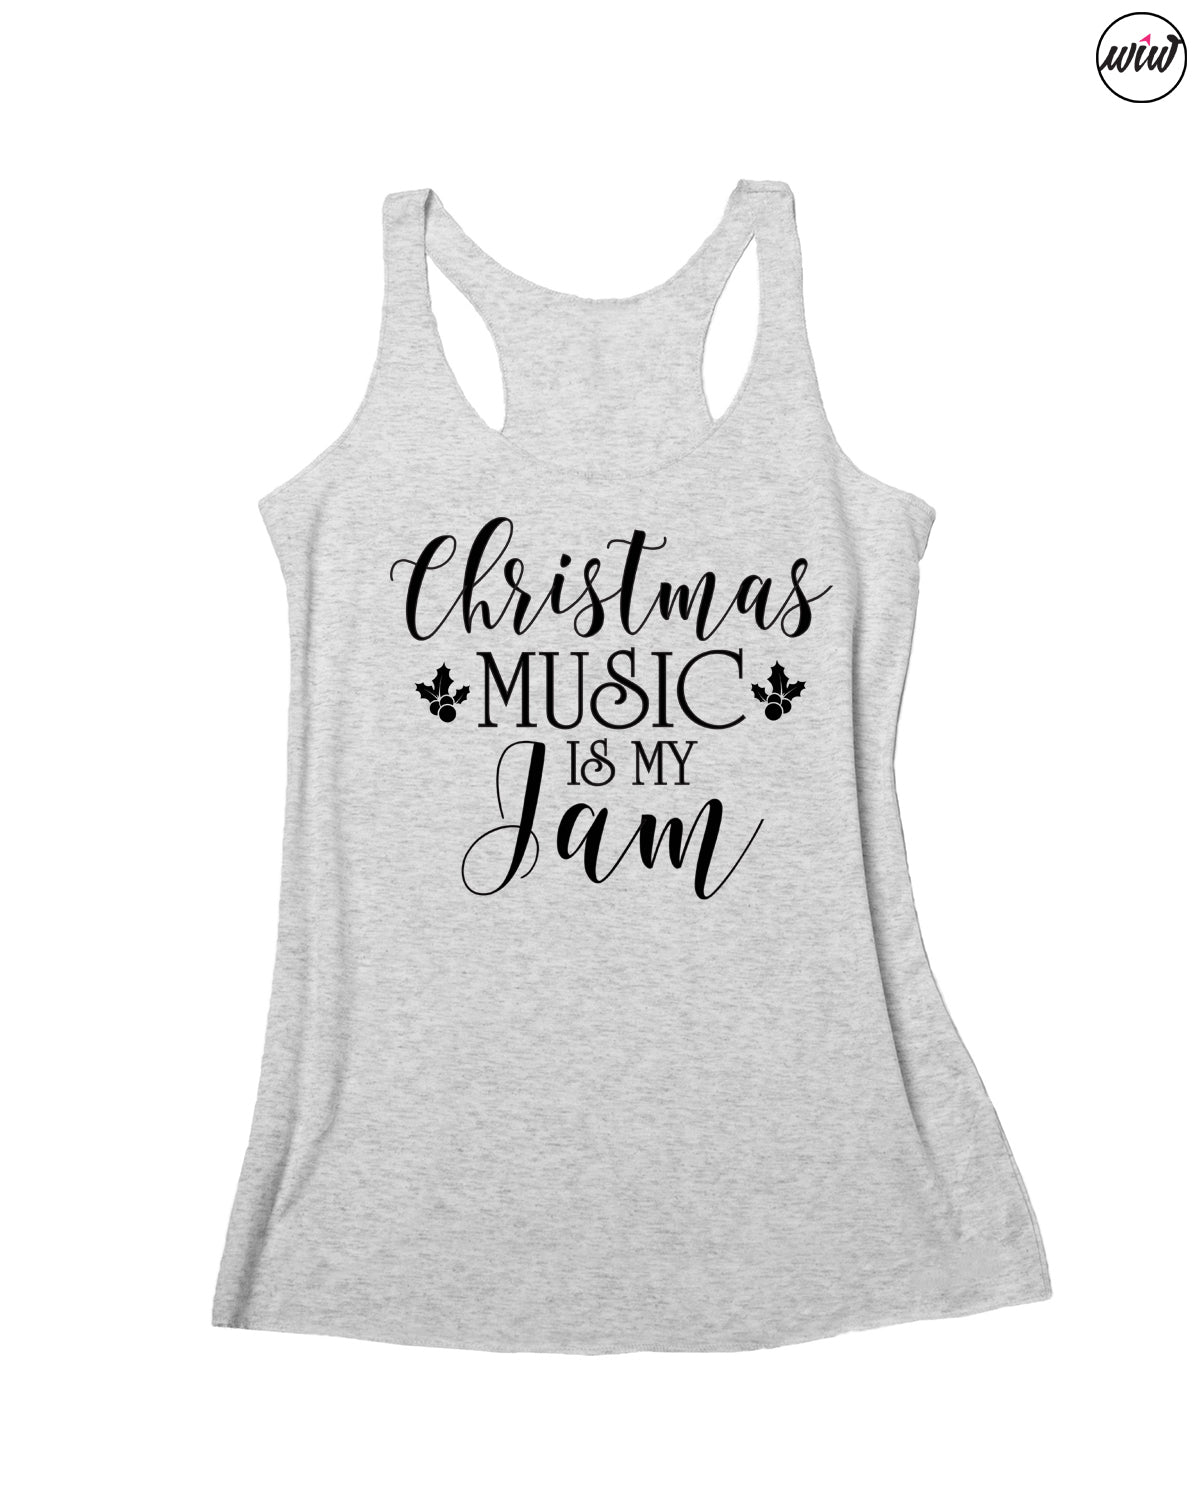 Christmas Music Is My Jam Tank Top. Holiday Shirt. This Girl Loves Christmas. Merry and Bright. Christmas Shirt. Xmas Shirt